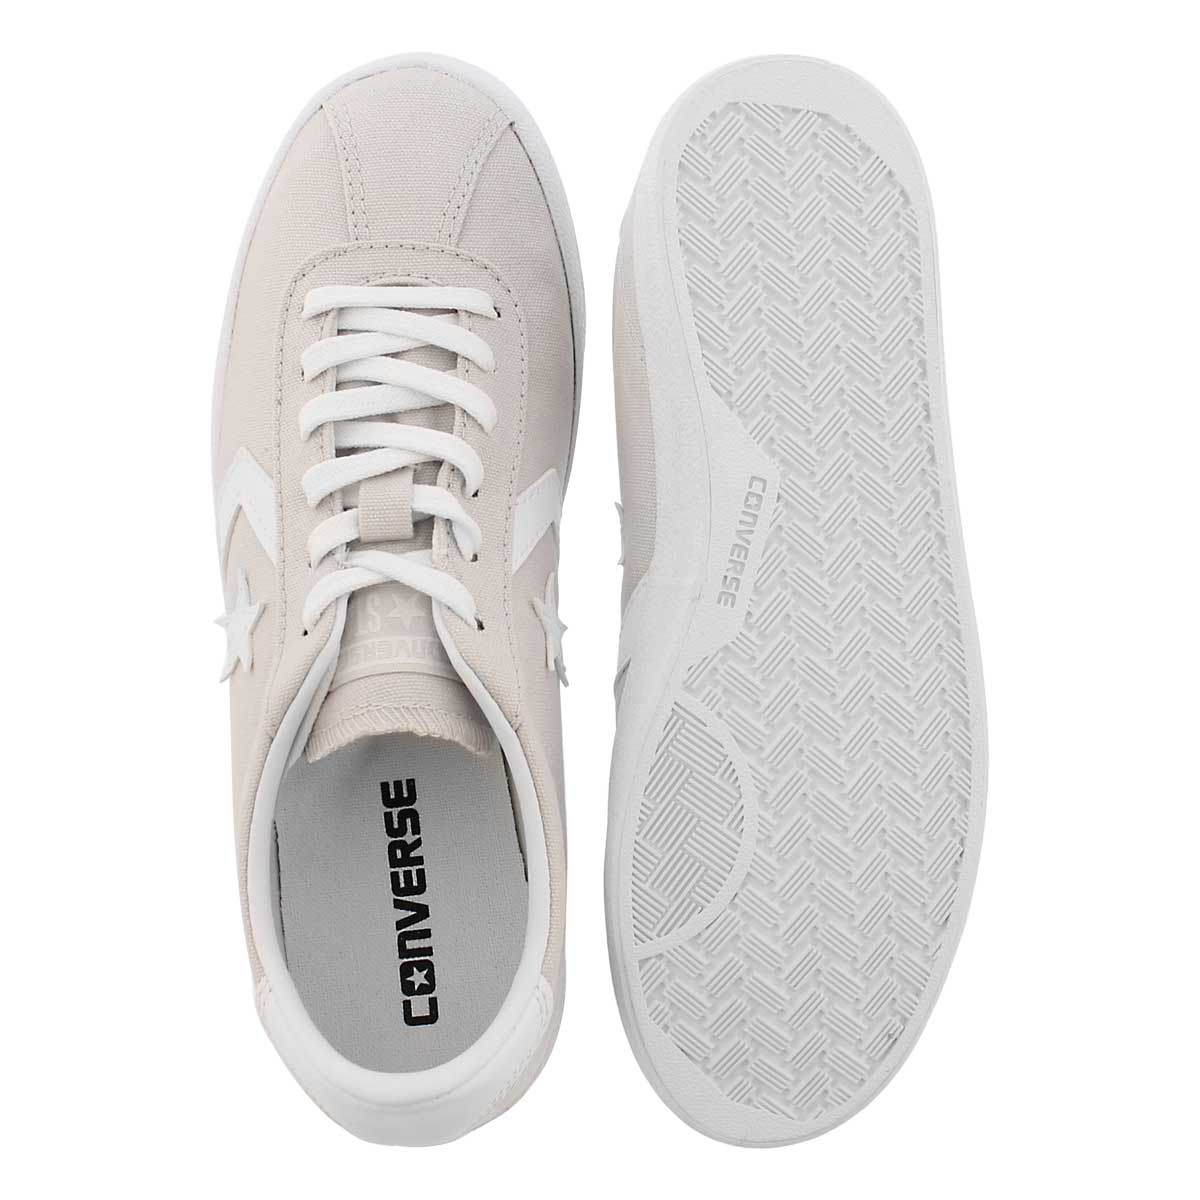 Lds Breakpoint pale putty fashion snkr